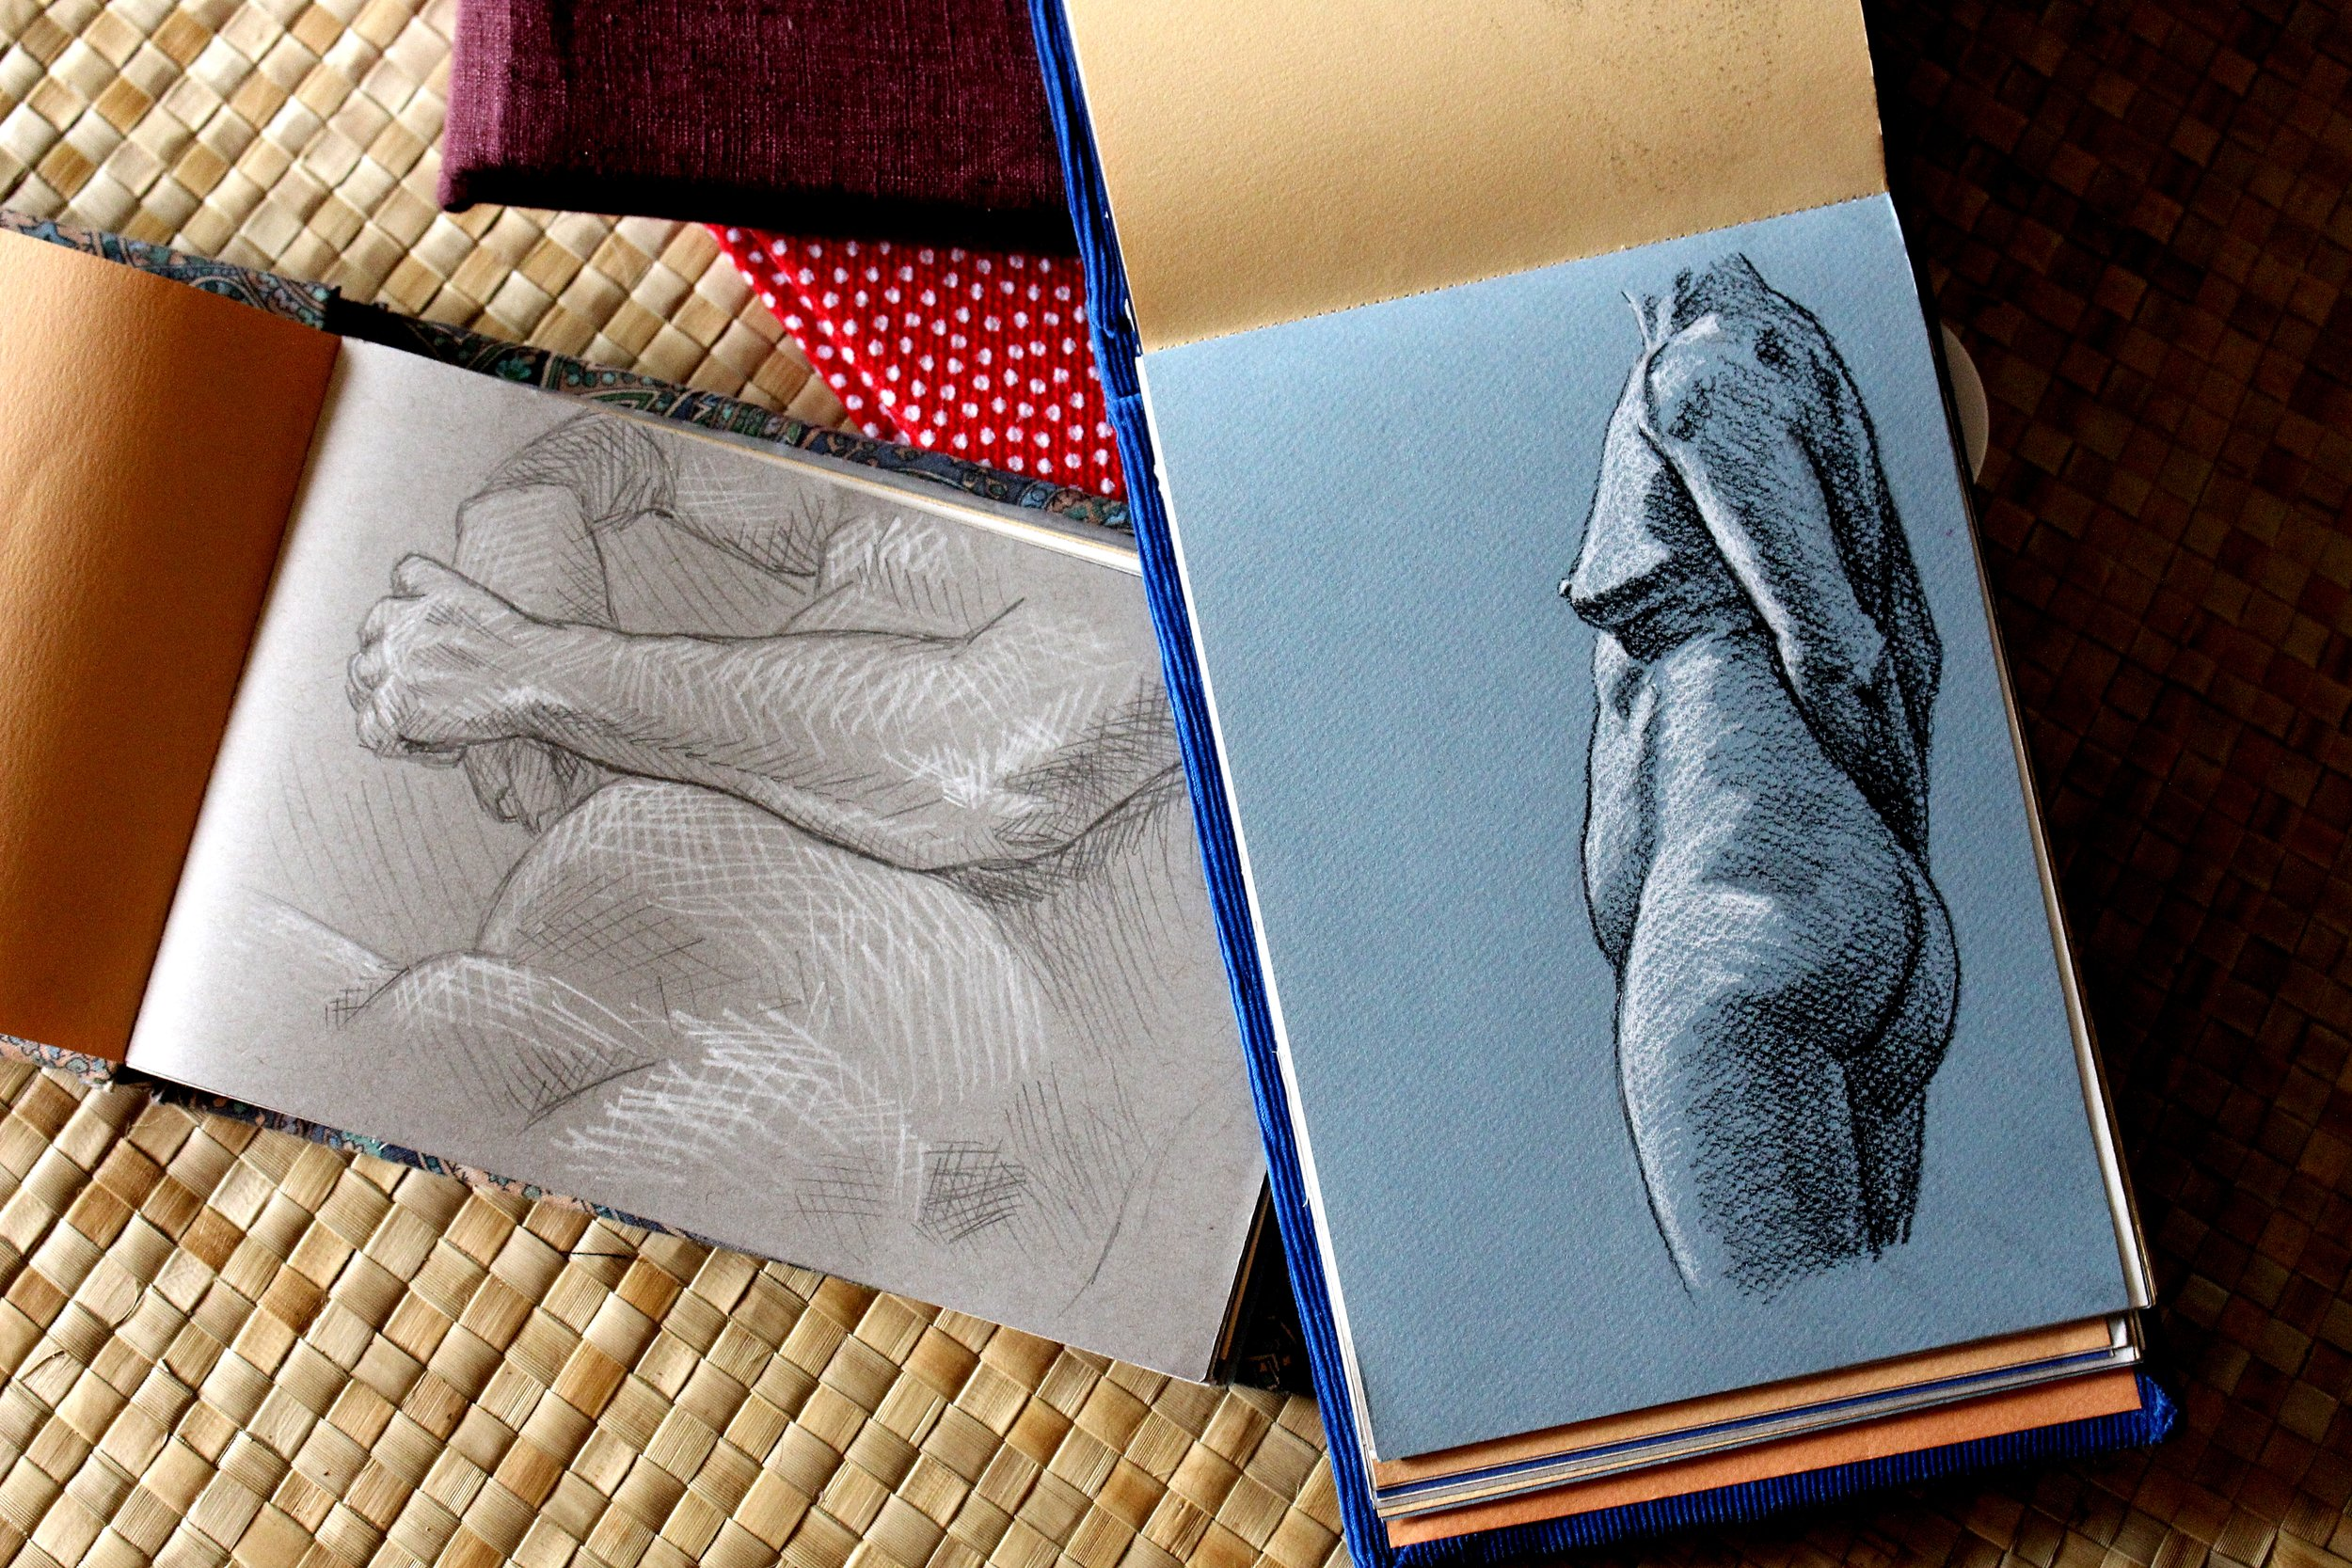 My first set of homemade sketchbooks are all filled up from my weekly figure drawing sessions